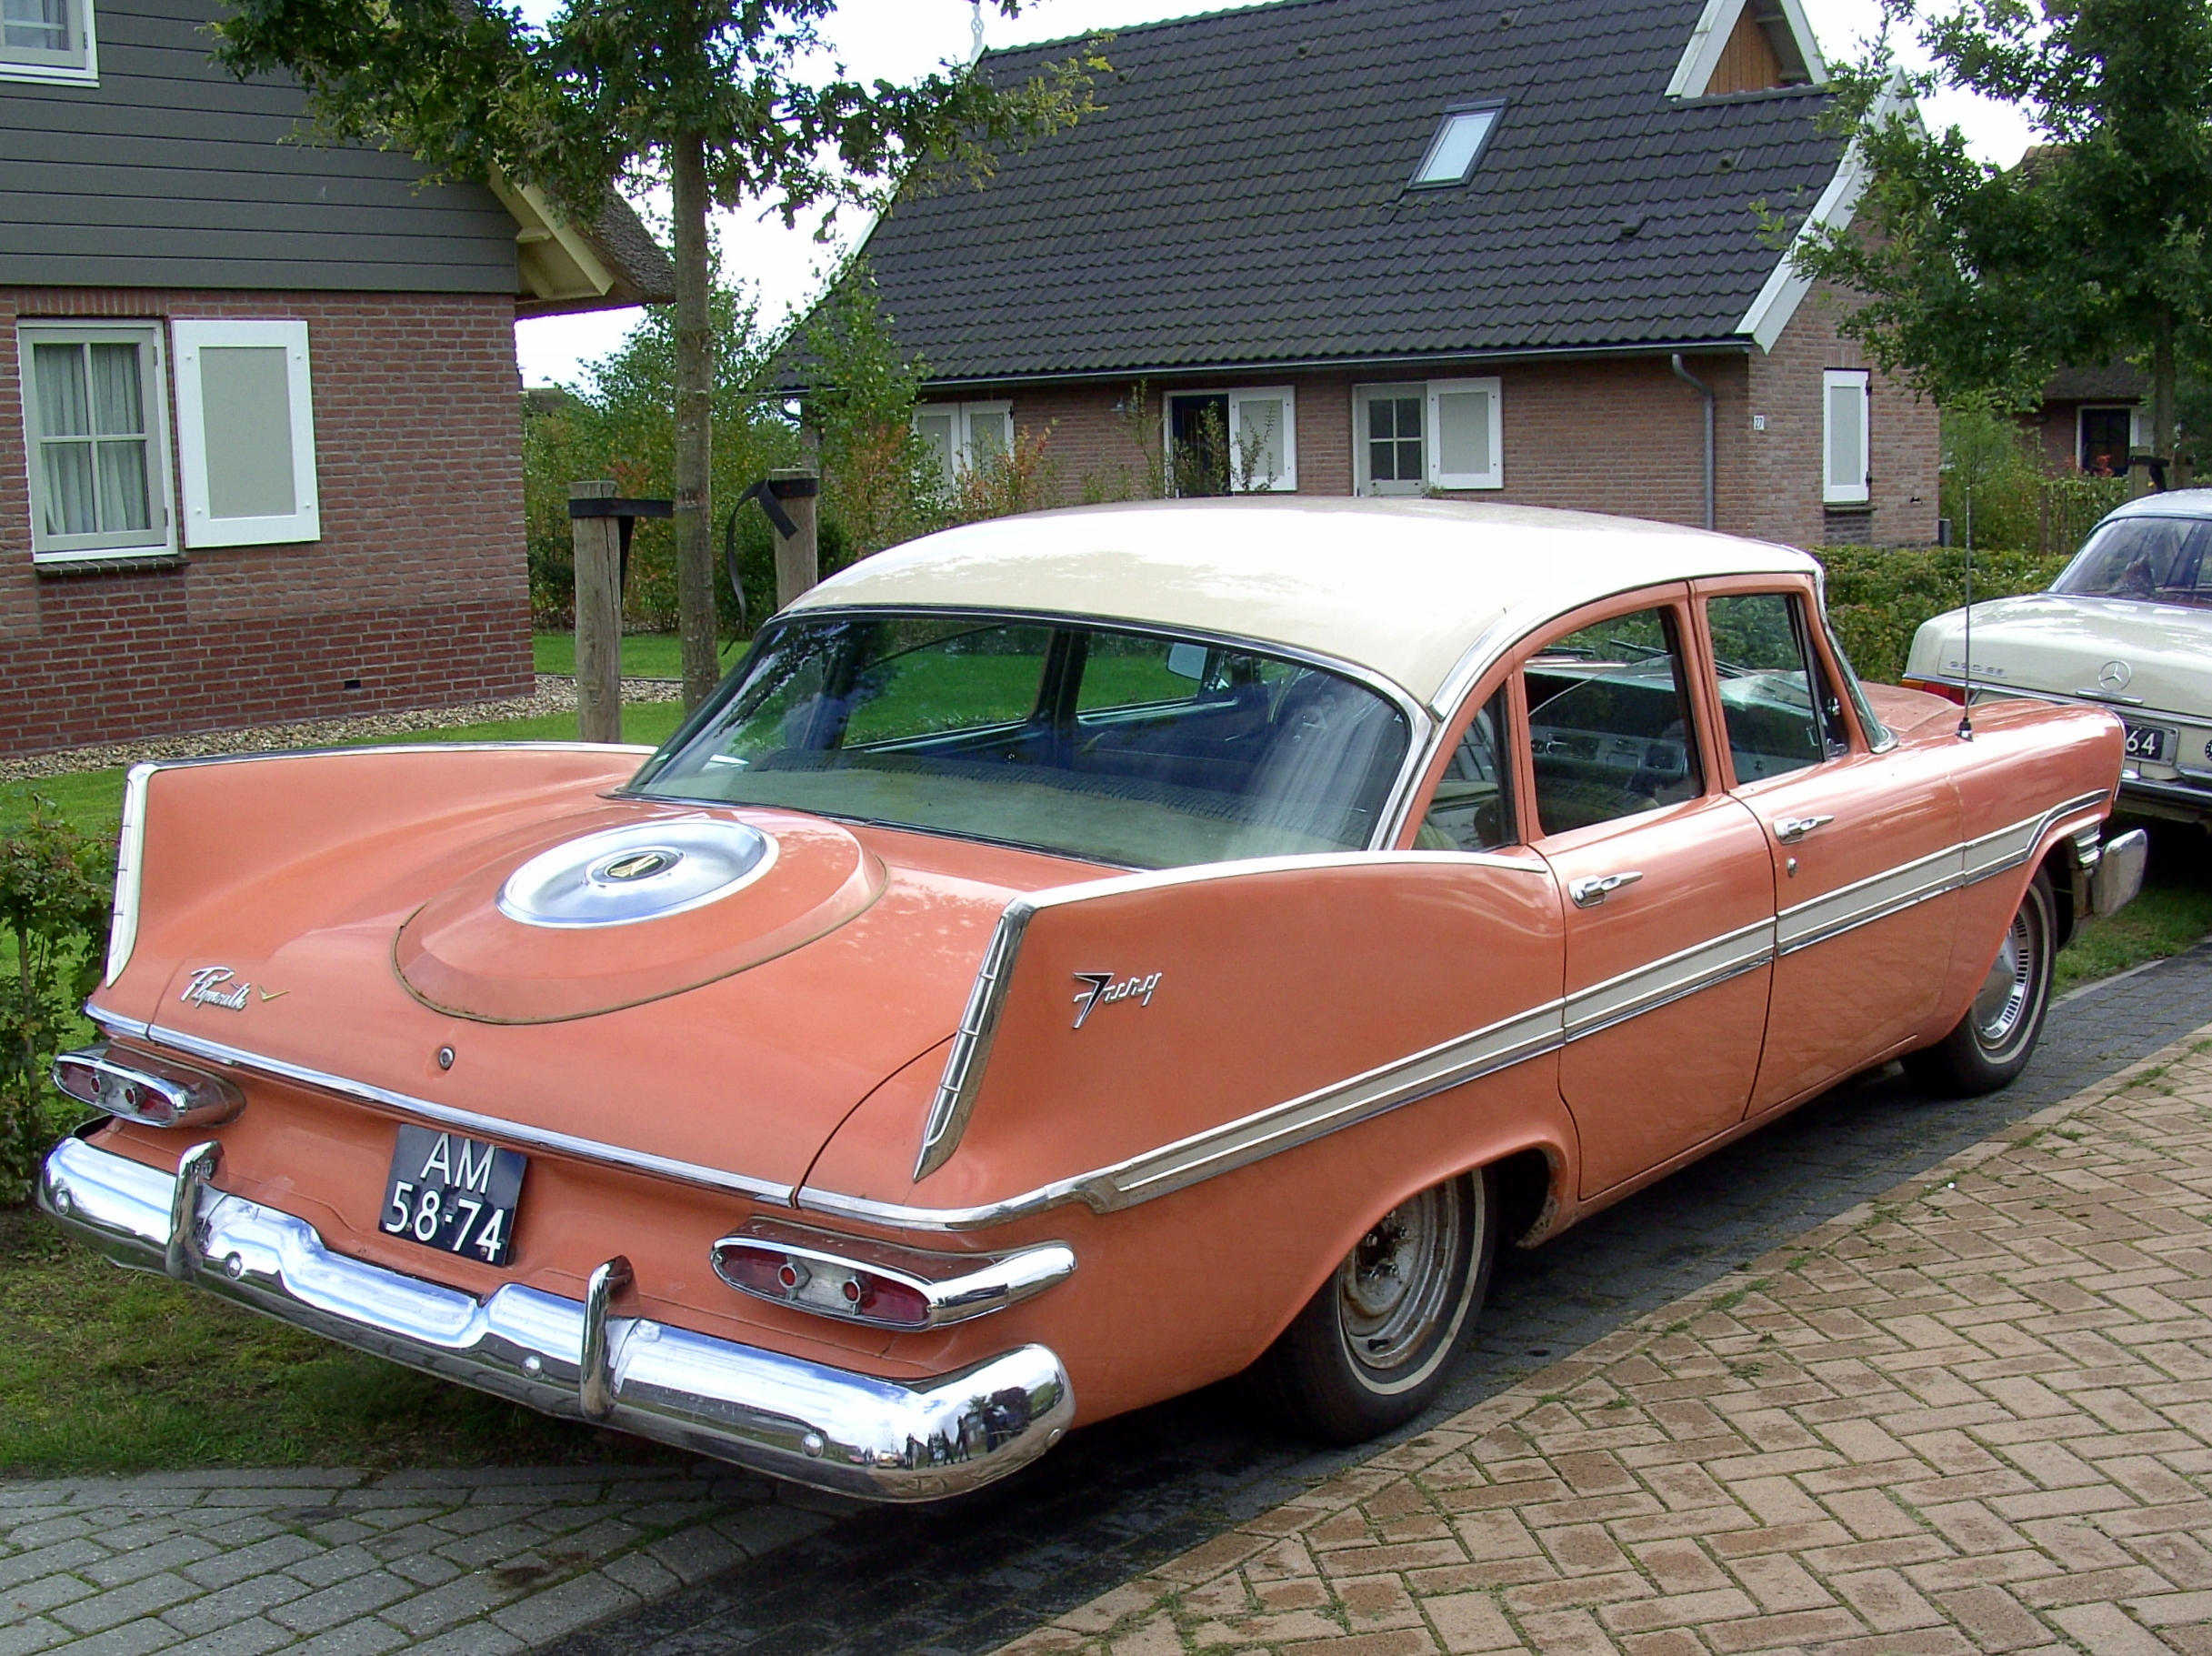 1959 plymouth sport fury interior related keywords - 1959 Plymouth Sport Fury Interior Related Keywords 15